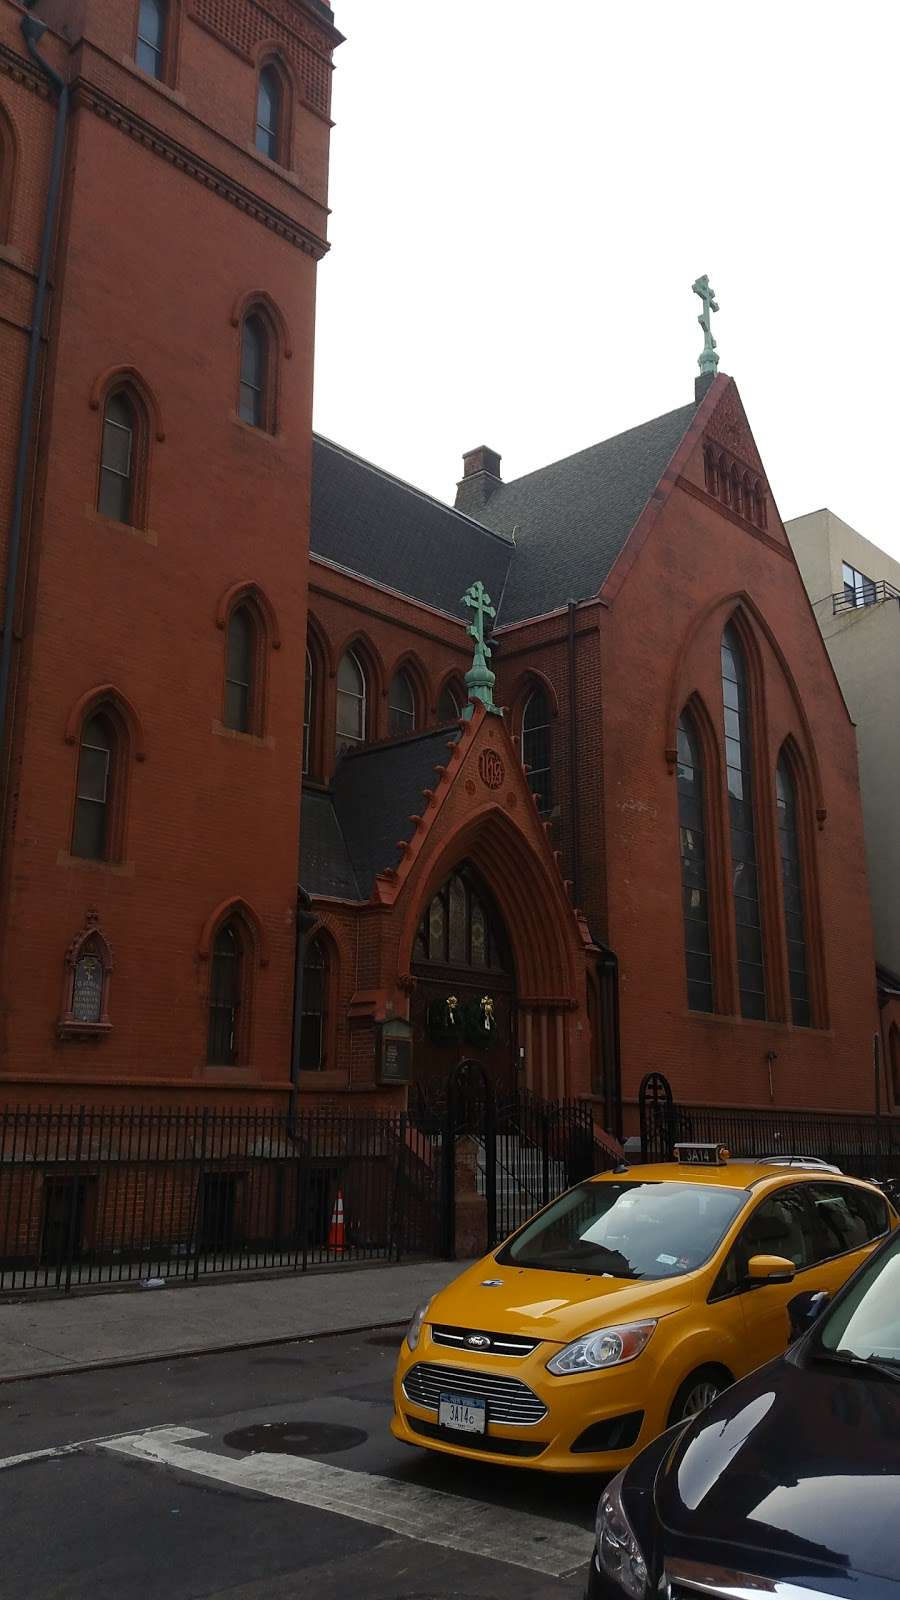 St Nicholas Carpatho Church - church  | Photo 9 of 10 | Address: 288 E 10th St, New York, NY 10009, USA | Phone: (212) 254-6685